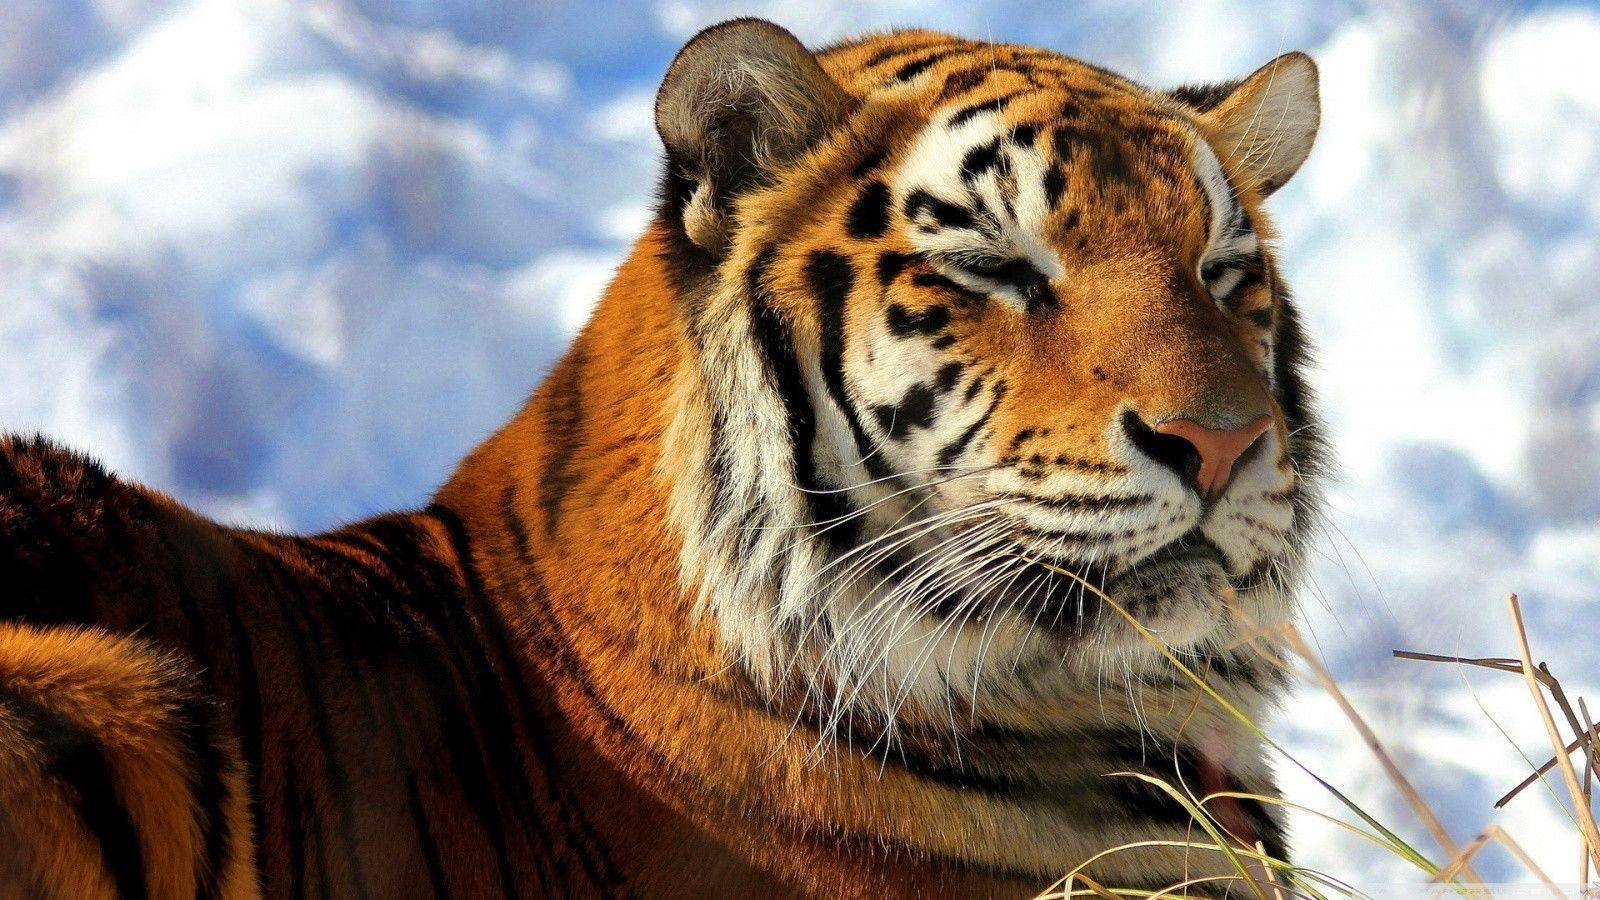 Tiger Hd Wallpapers Wallpaper Cave